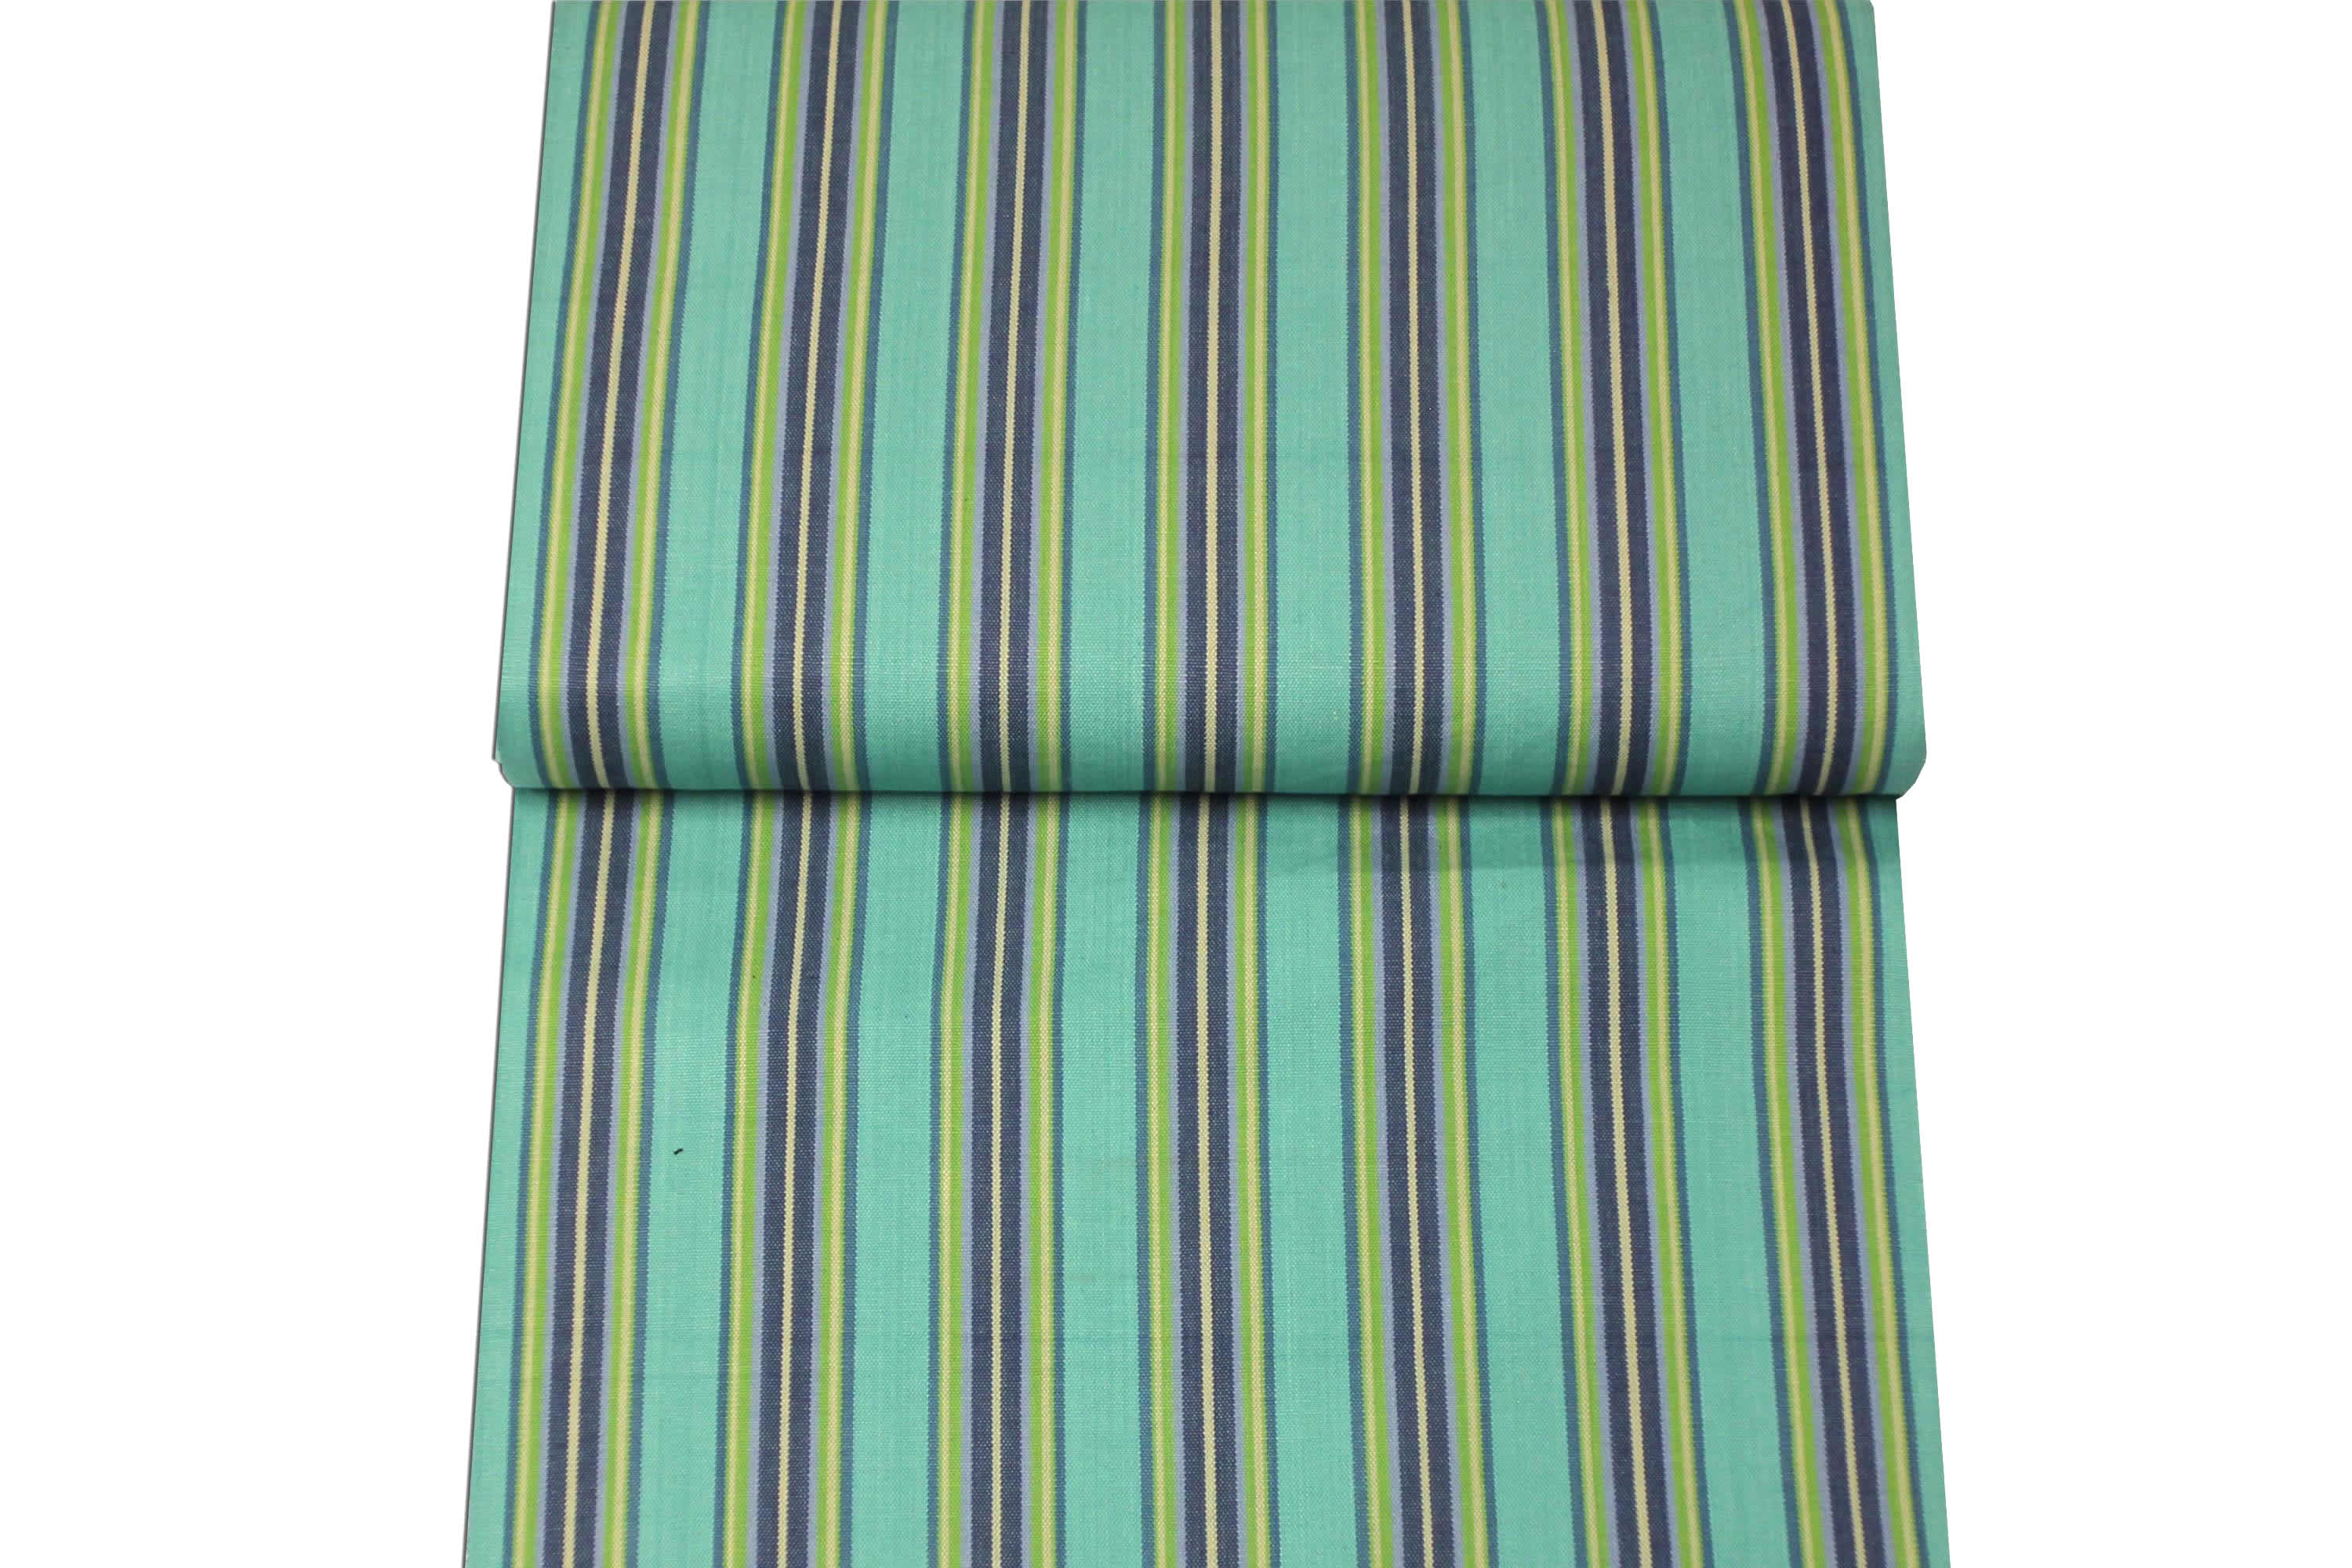 Striped Deckchair Canvas Fabric Strong turquoise, blue, green